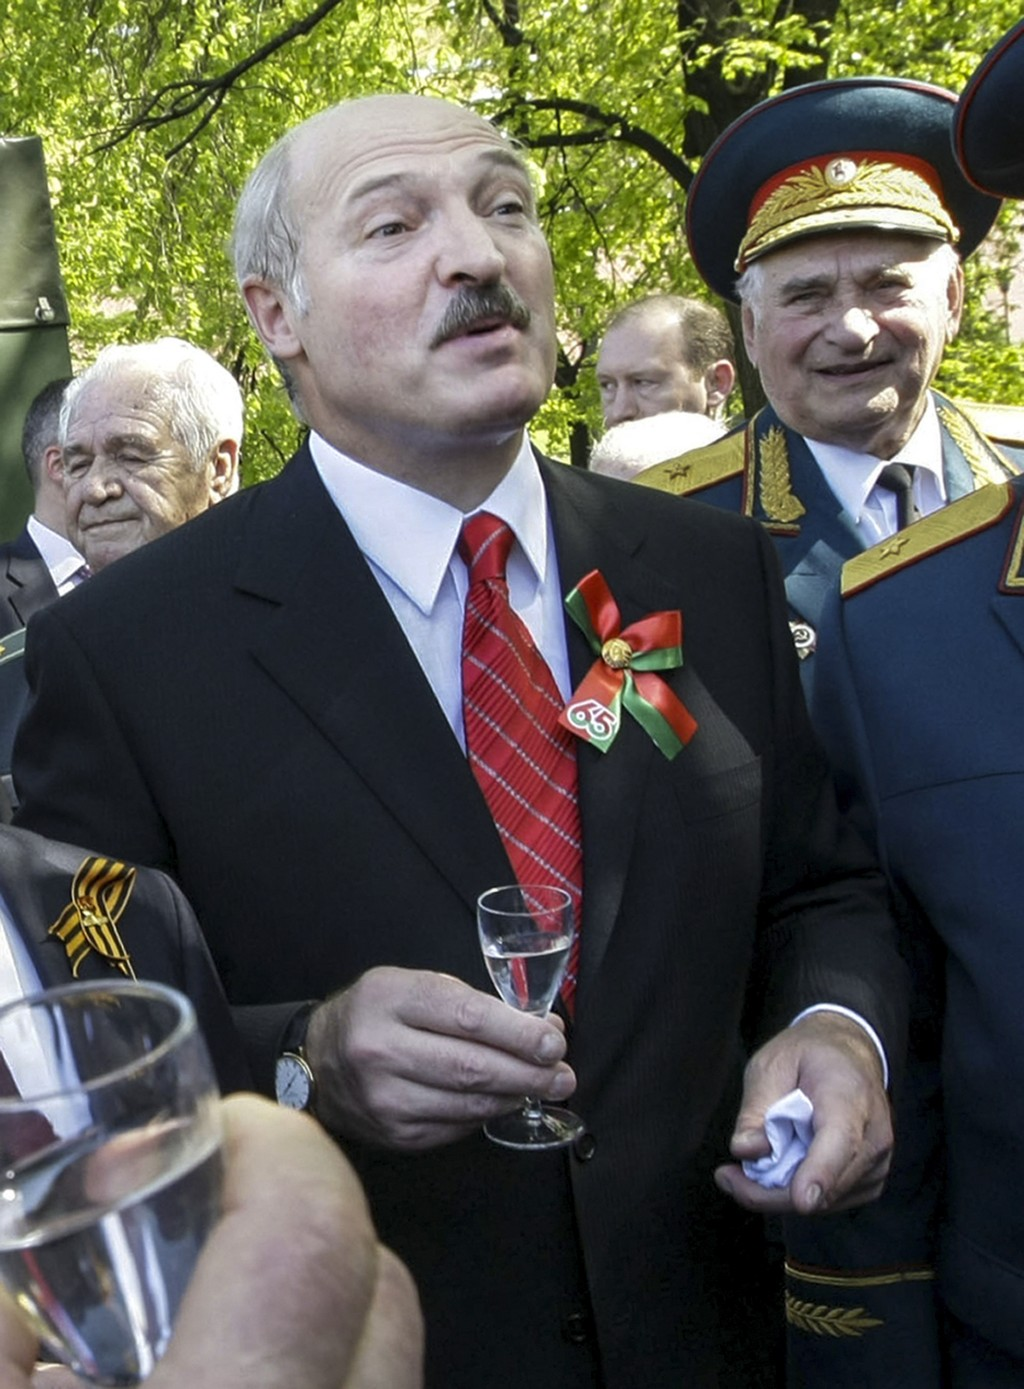 FILE In this file pool photo taken on Saturday, May 8, 2010, Belarusian President Alexander Lukashenko toasts with World War II veterans during an unv...